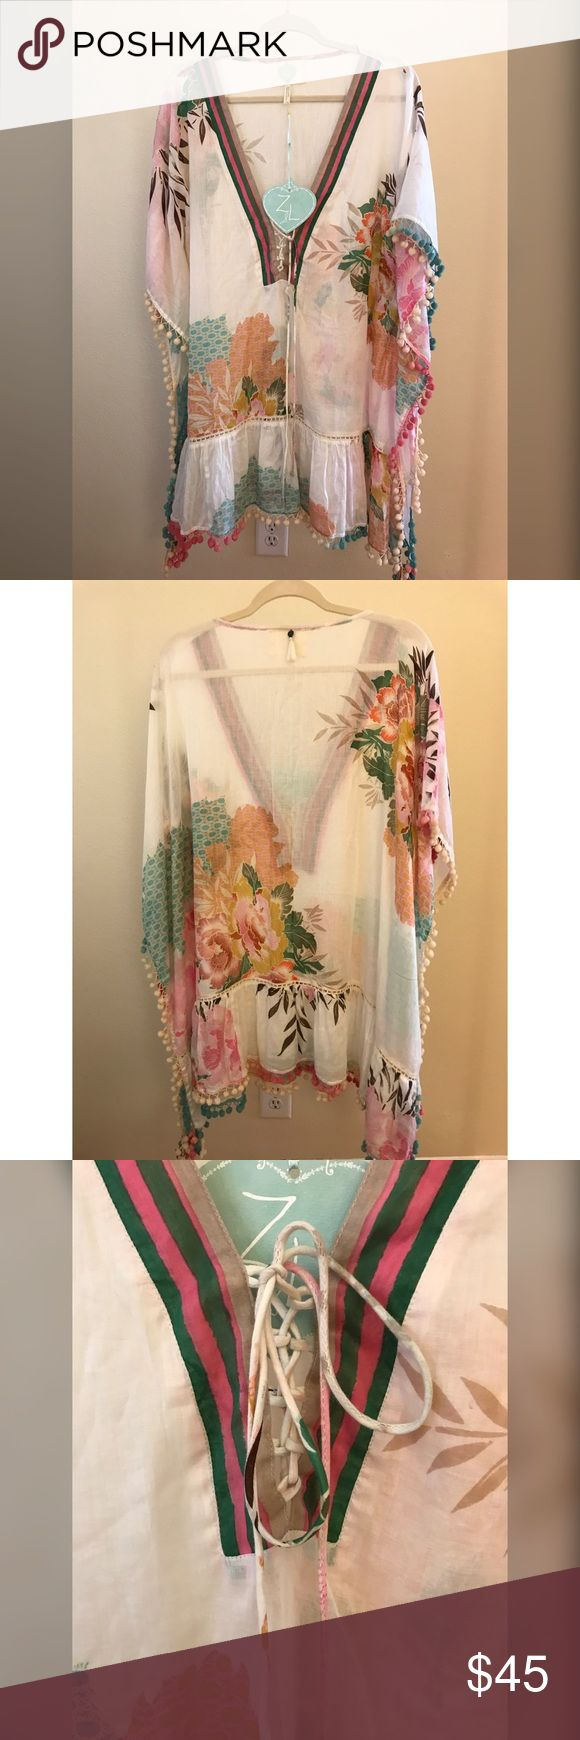 NEW Z&L Caftan, Beach Cover-up, or Dress Can be worn as a caftan/beach cover-up or dress. Colorful tropical floral print. Lace-up v-neck with colorful stripe trim detail. Flirty ruffle hem with colorful Pom trim. About Z&L: The brand is designed for the free spirit, bohemian and romantic woman who wants her wardrobe to reflect her unique eclectic style. Sold at Revolve, Everything But Water, Forever 21 Brands Store. Z&L Swim Coverups